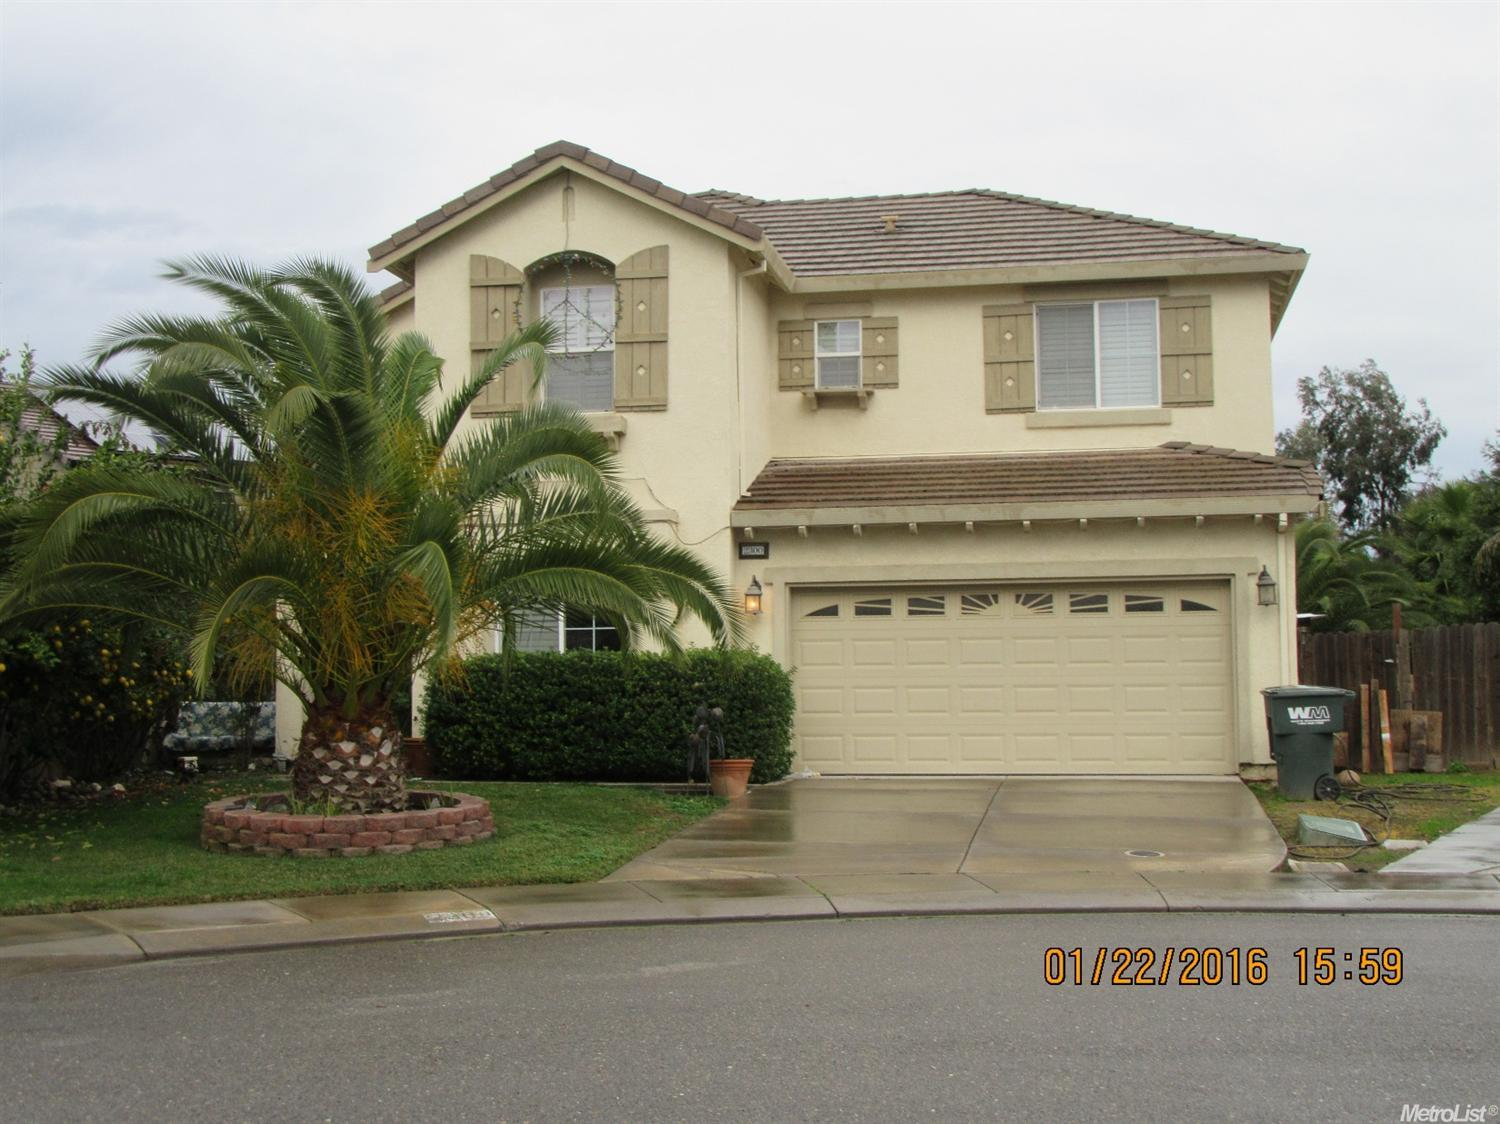 2300 Coconut Palm Way, Modesto, CA